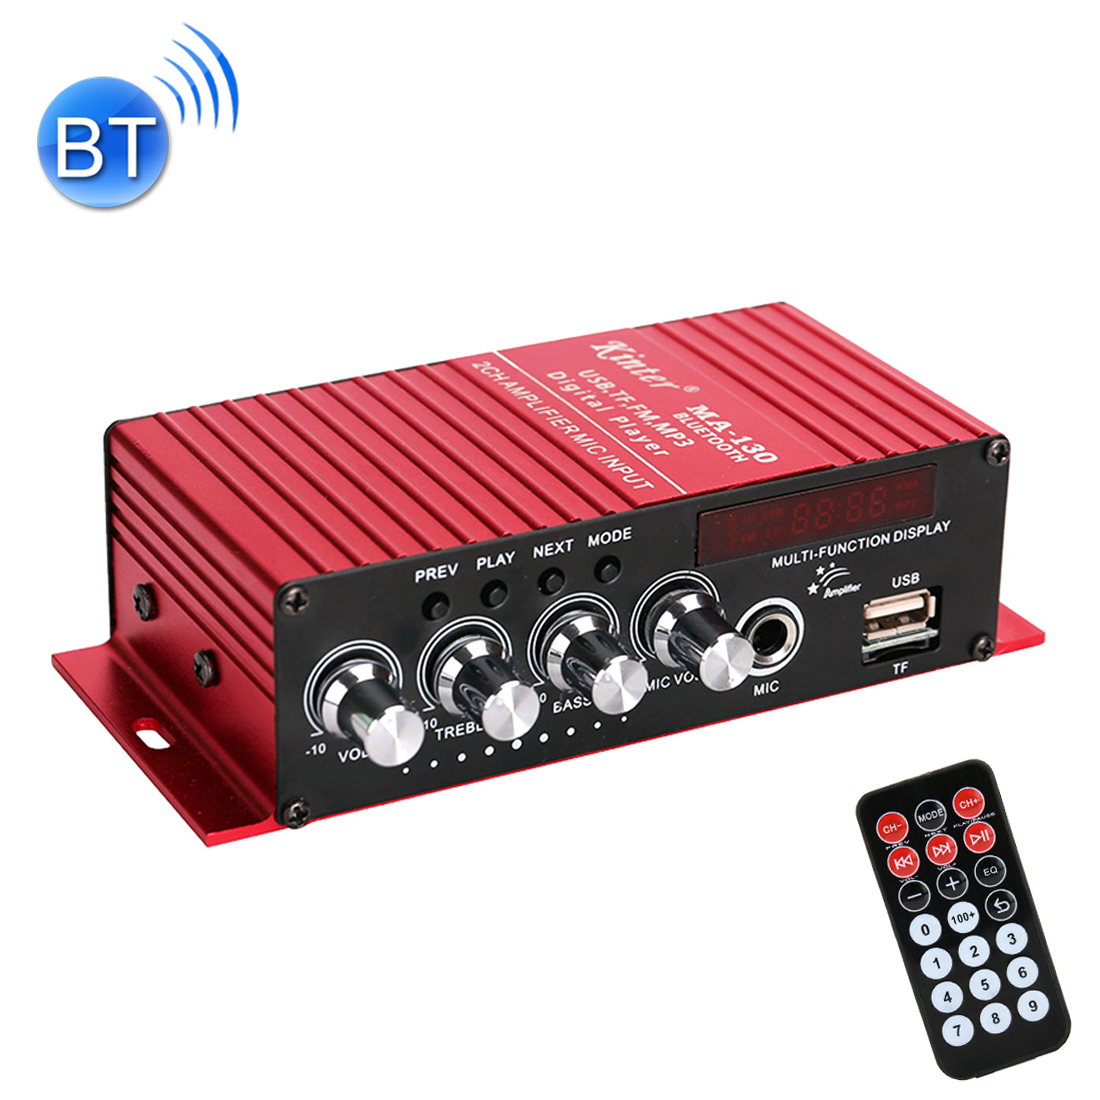 MA-130 2CH Car Amplifier Audio, Support Bluetooth, MP3, USB, FM, TF with Remote Control DC 12V